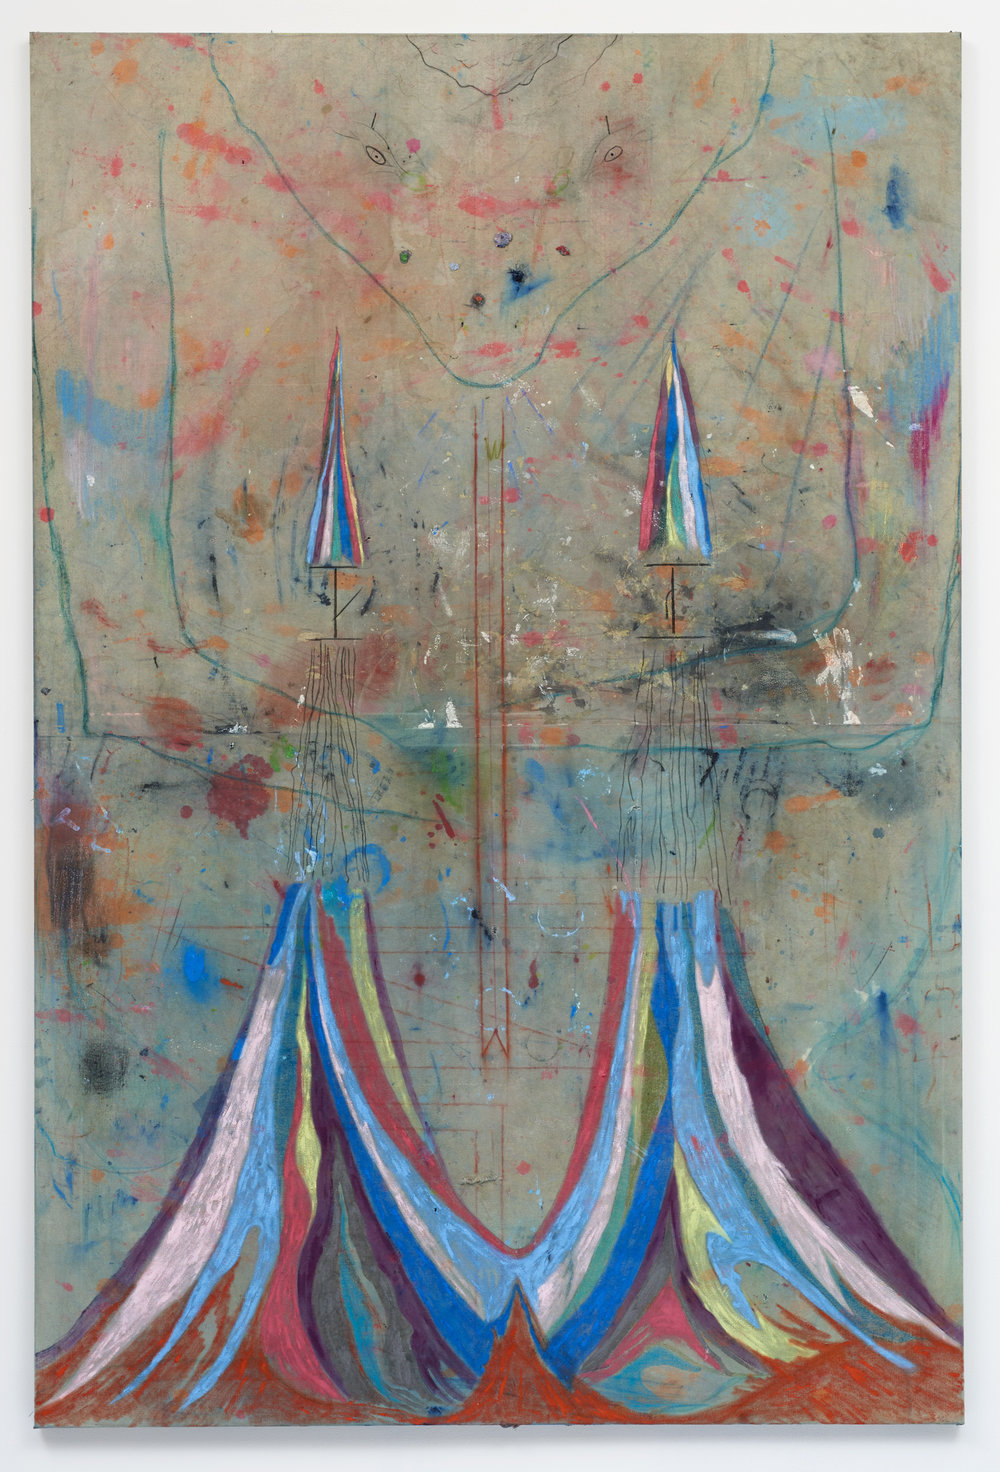 Ross Taylor, Between the spoons and the drains, 2018, Oil paint, and pastel on linen, 180 x 120 cm